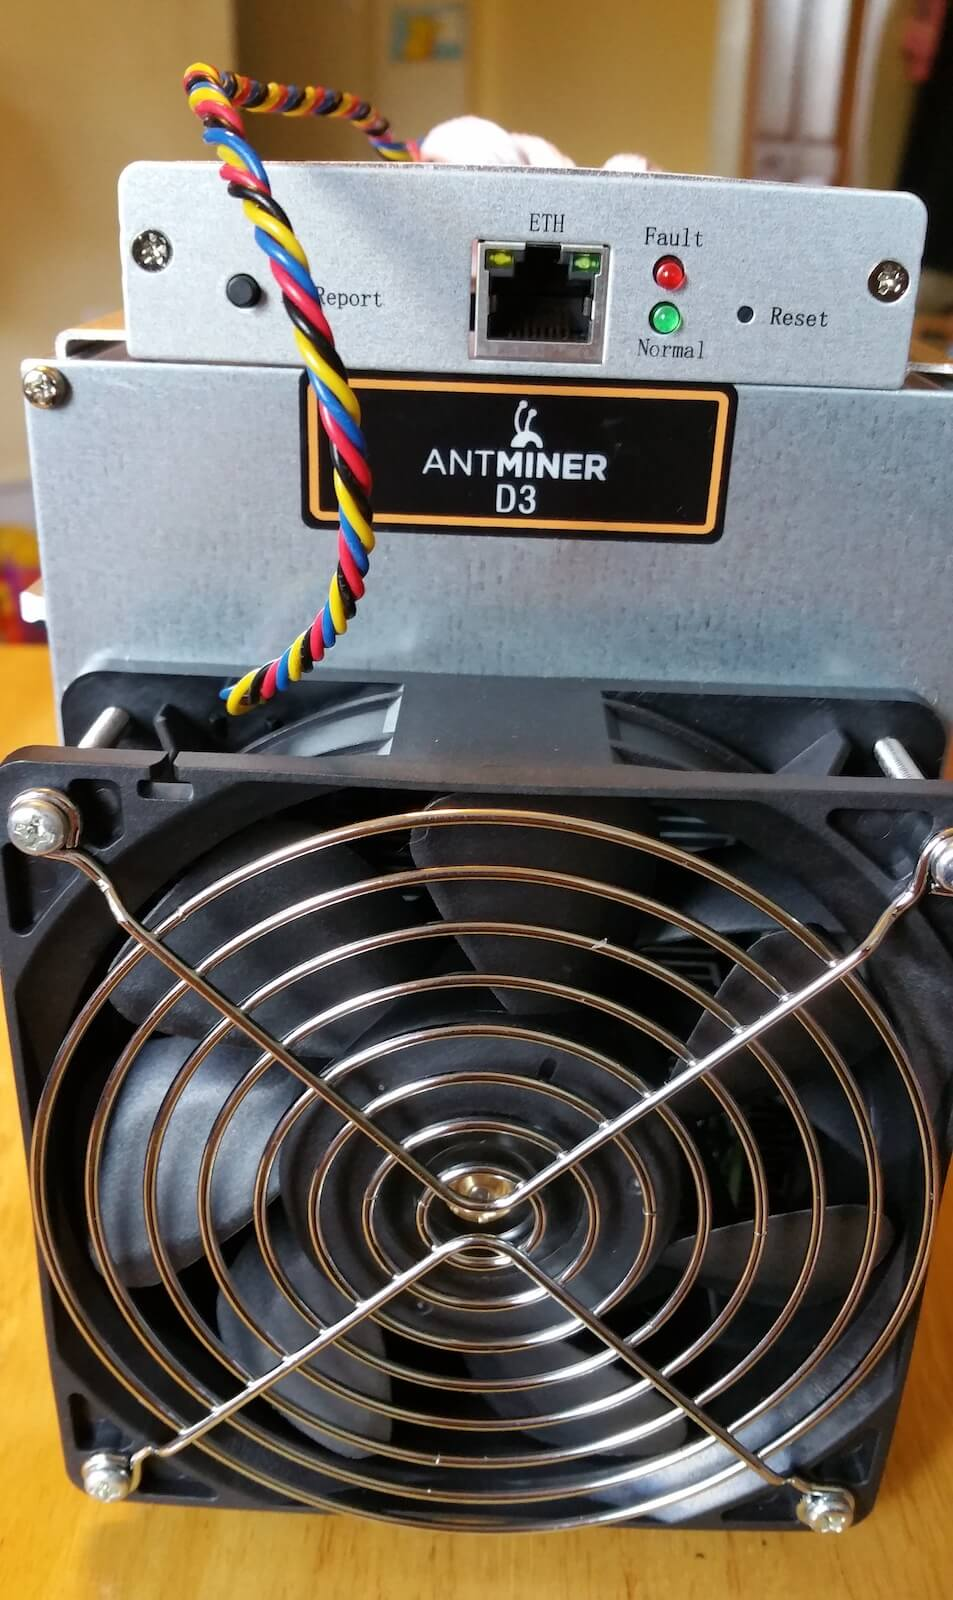 Antminer_D3_2 (1)